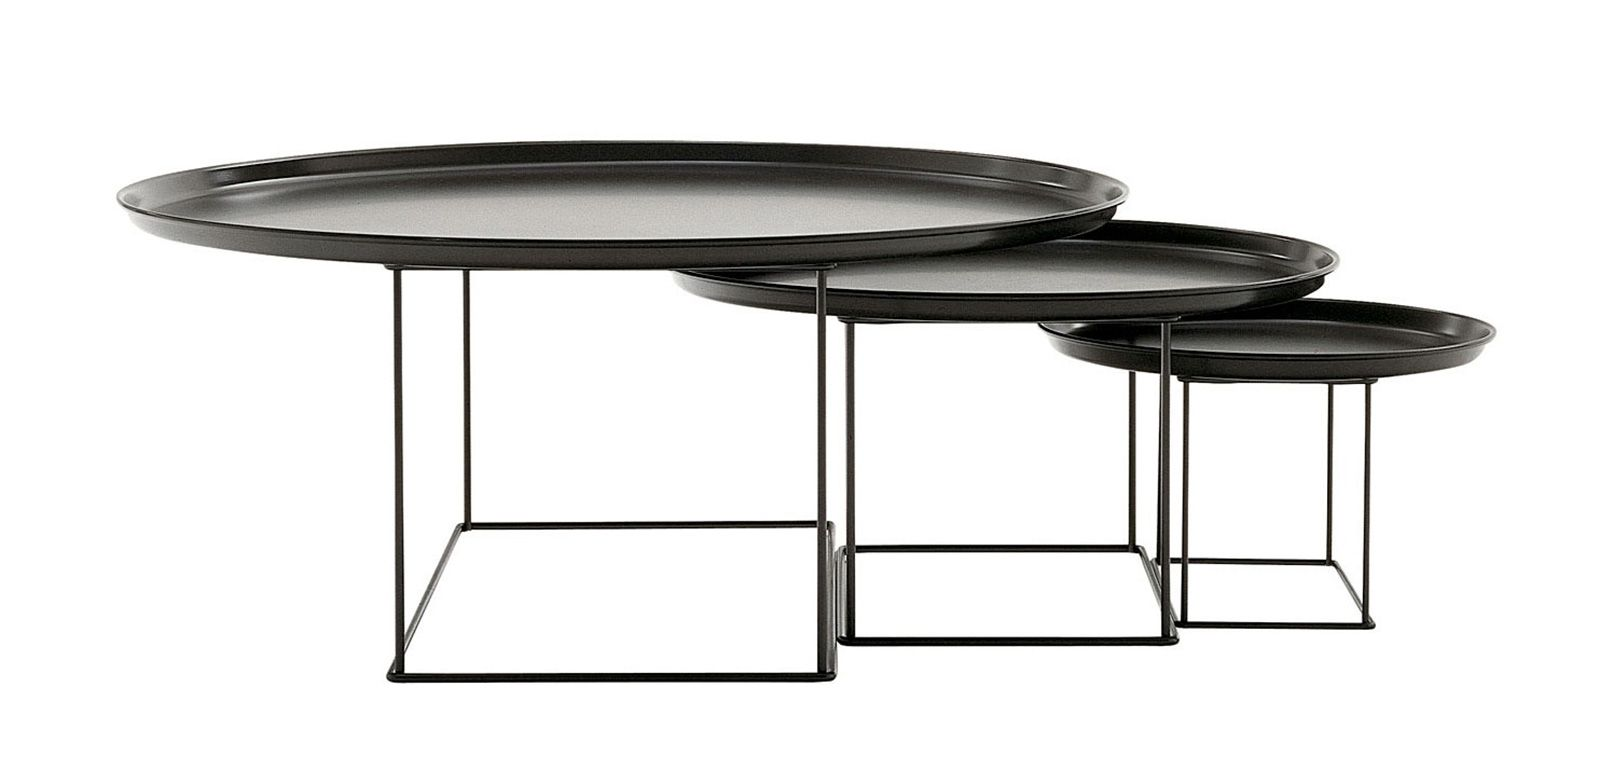 Table basse design patricia urquiola tables gigognes - Table gigogne design ...